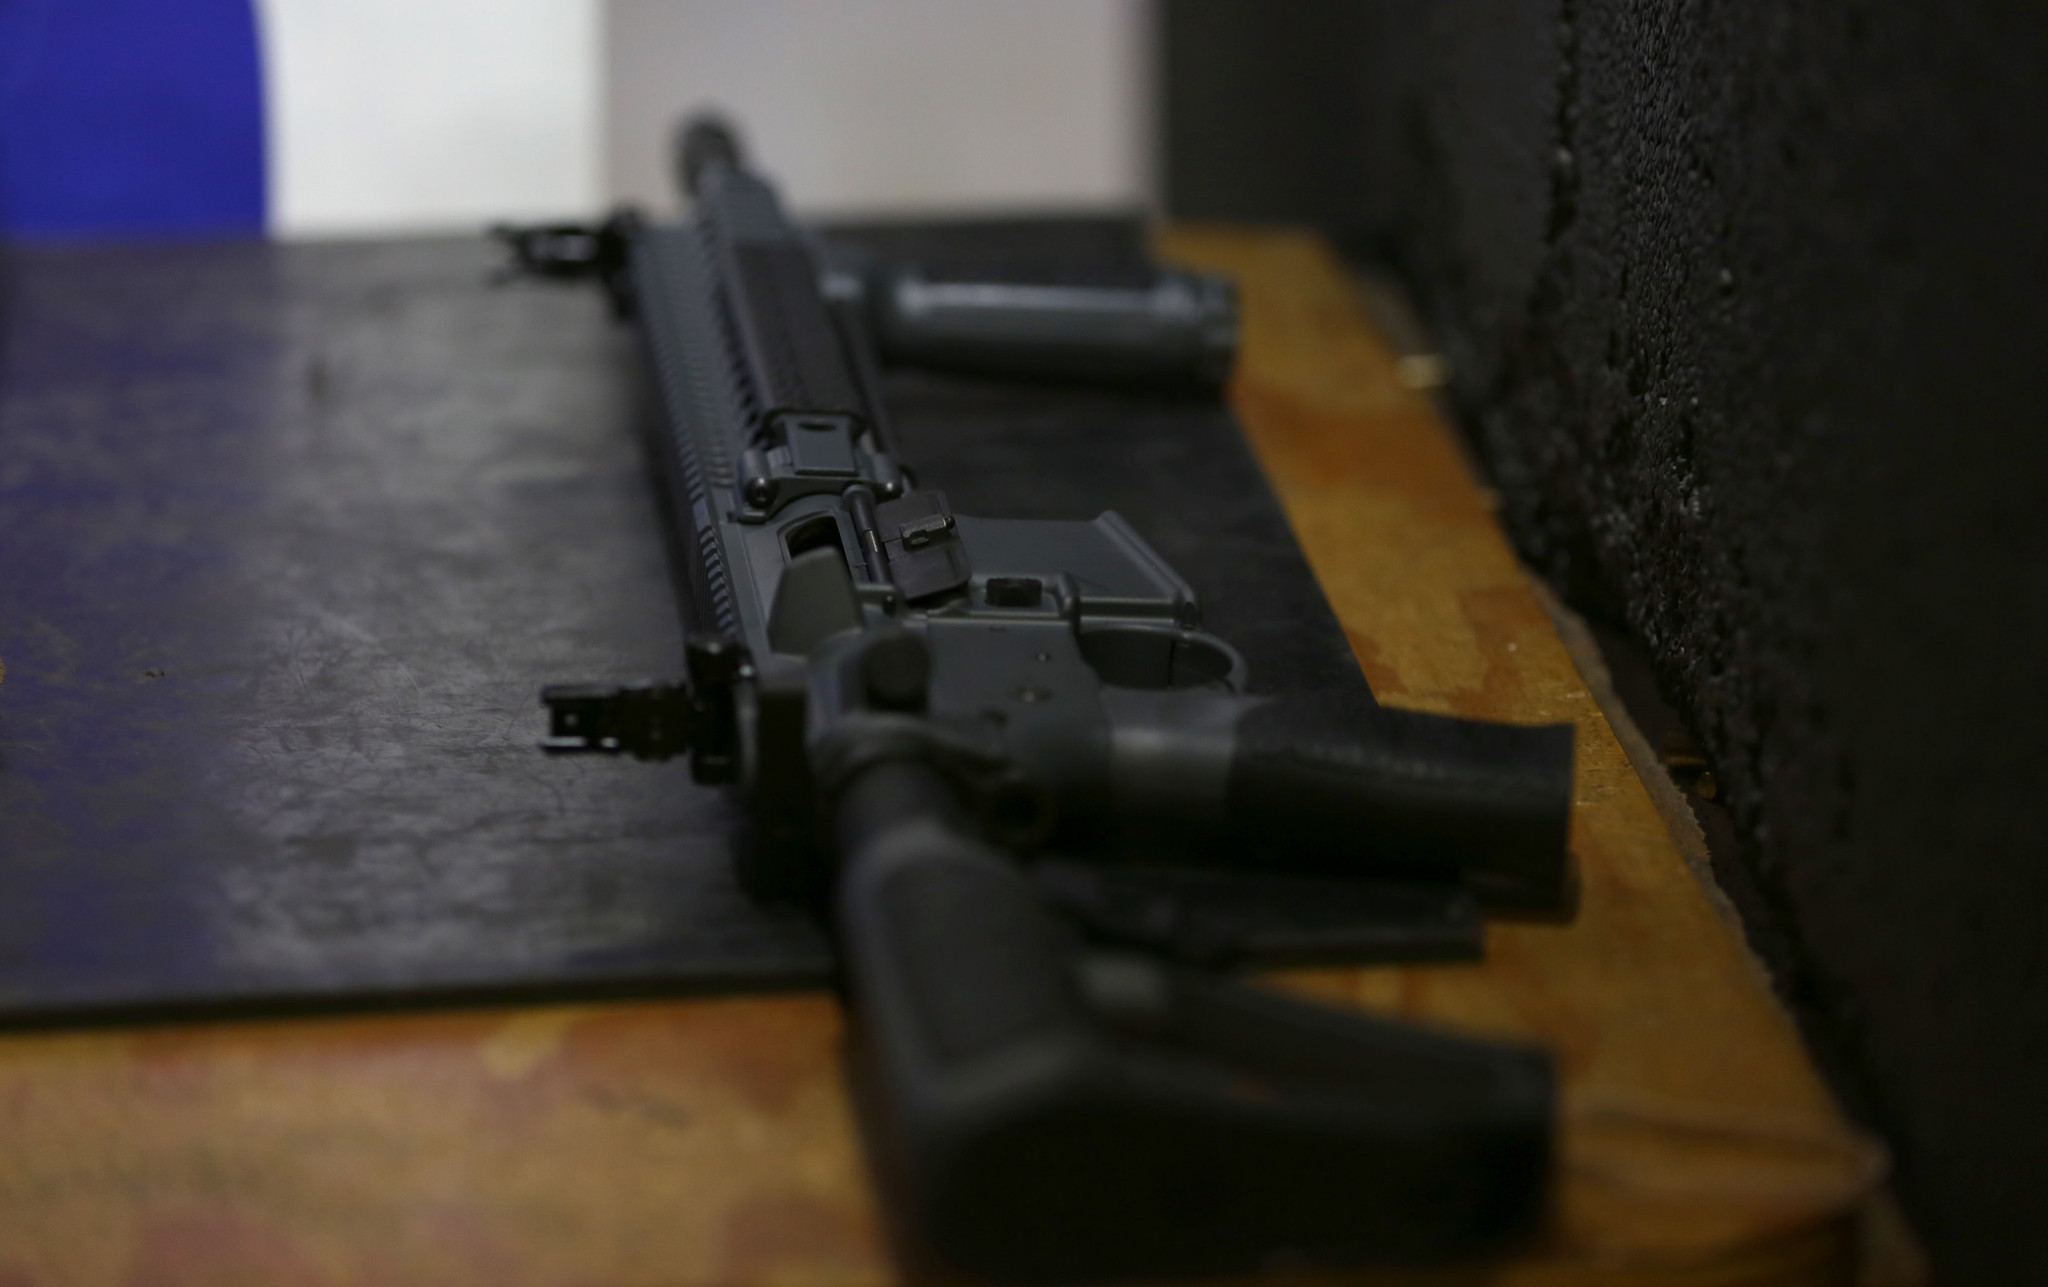 Supreme Court rejection of gun case considered a victory by Highland Park